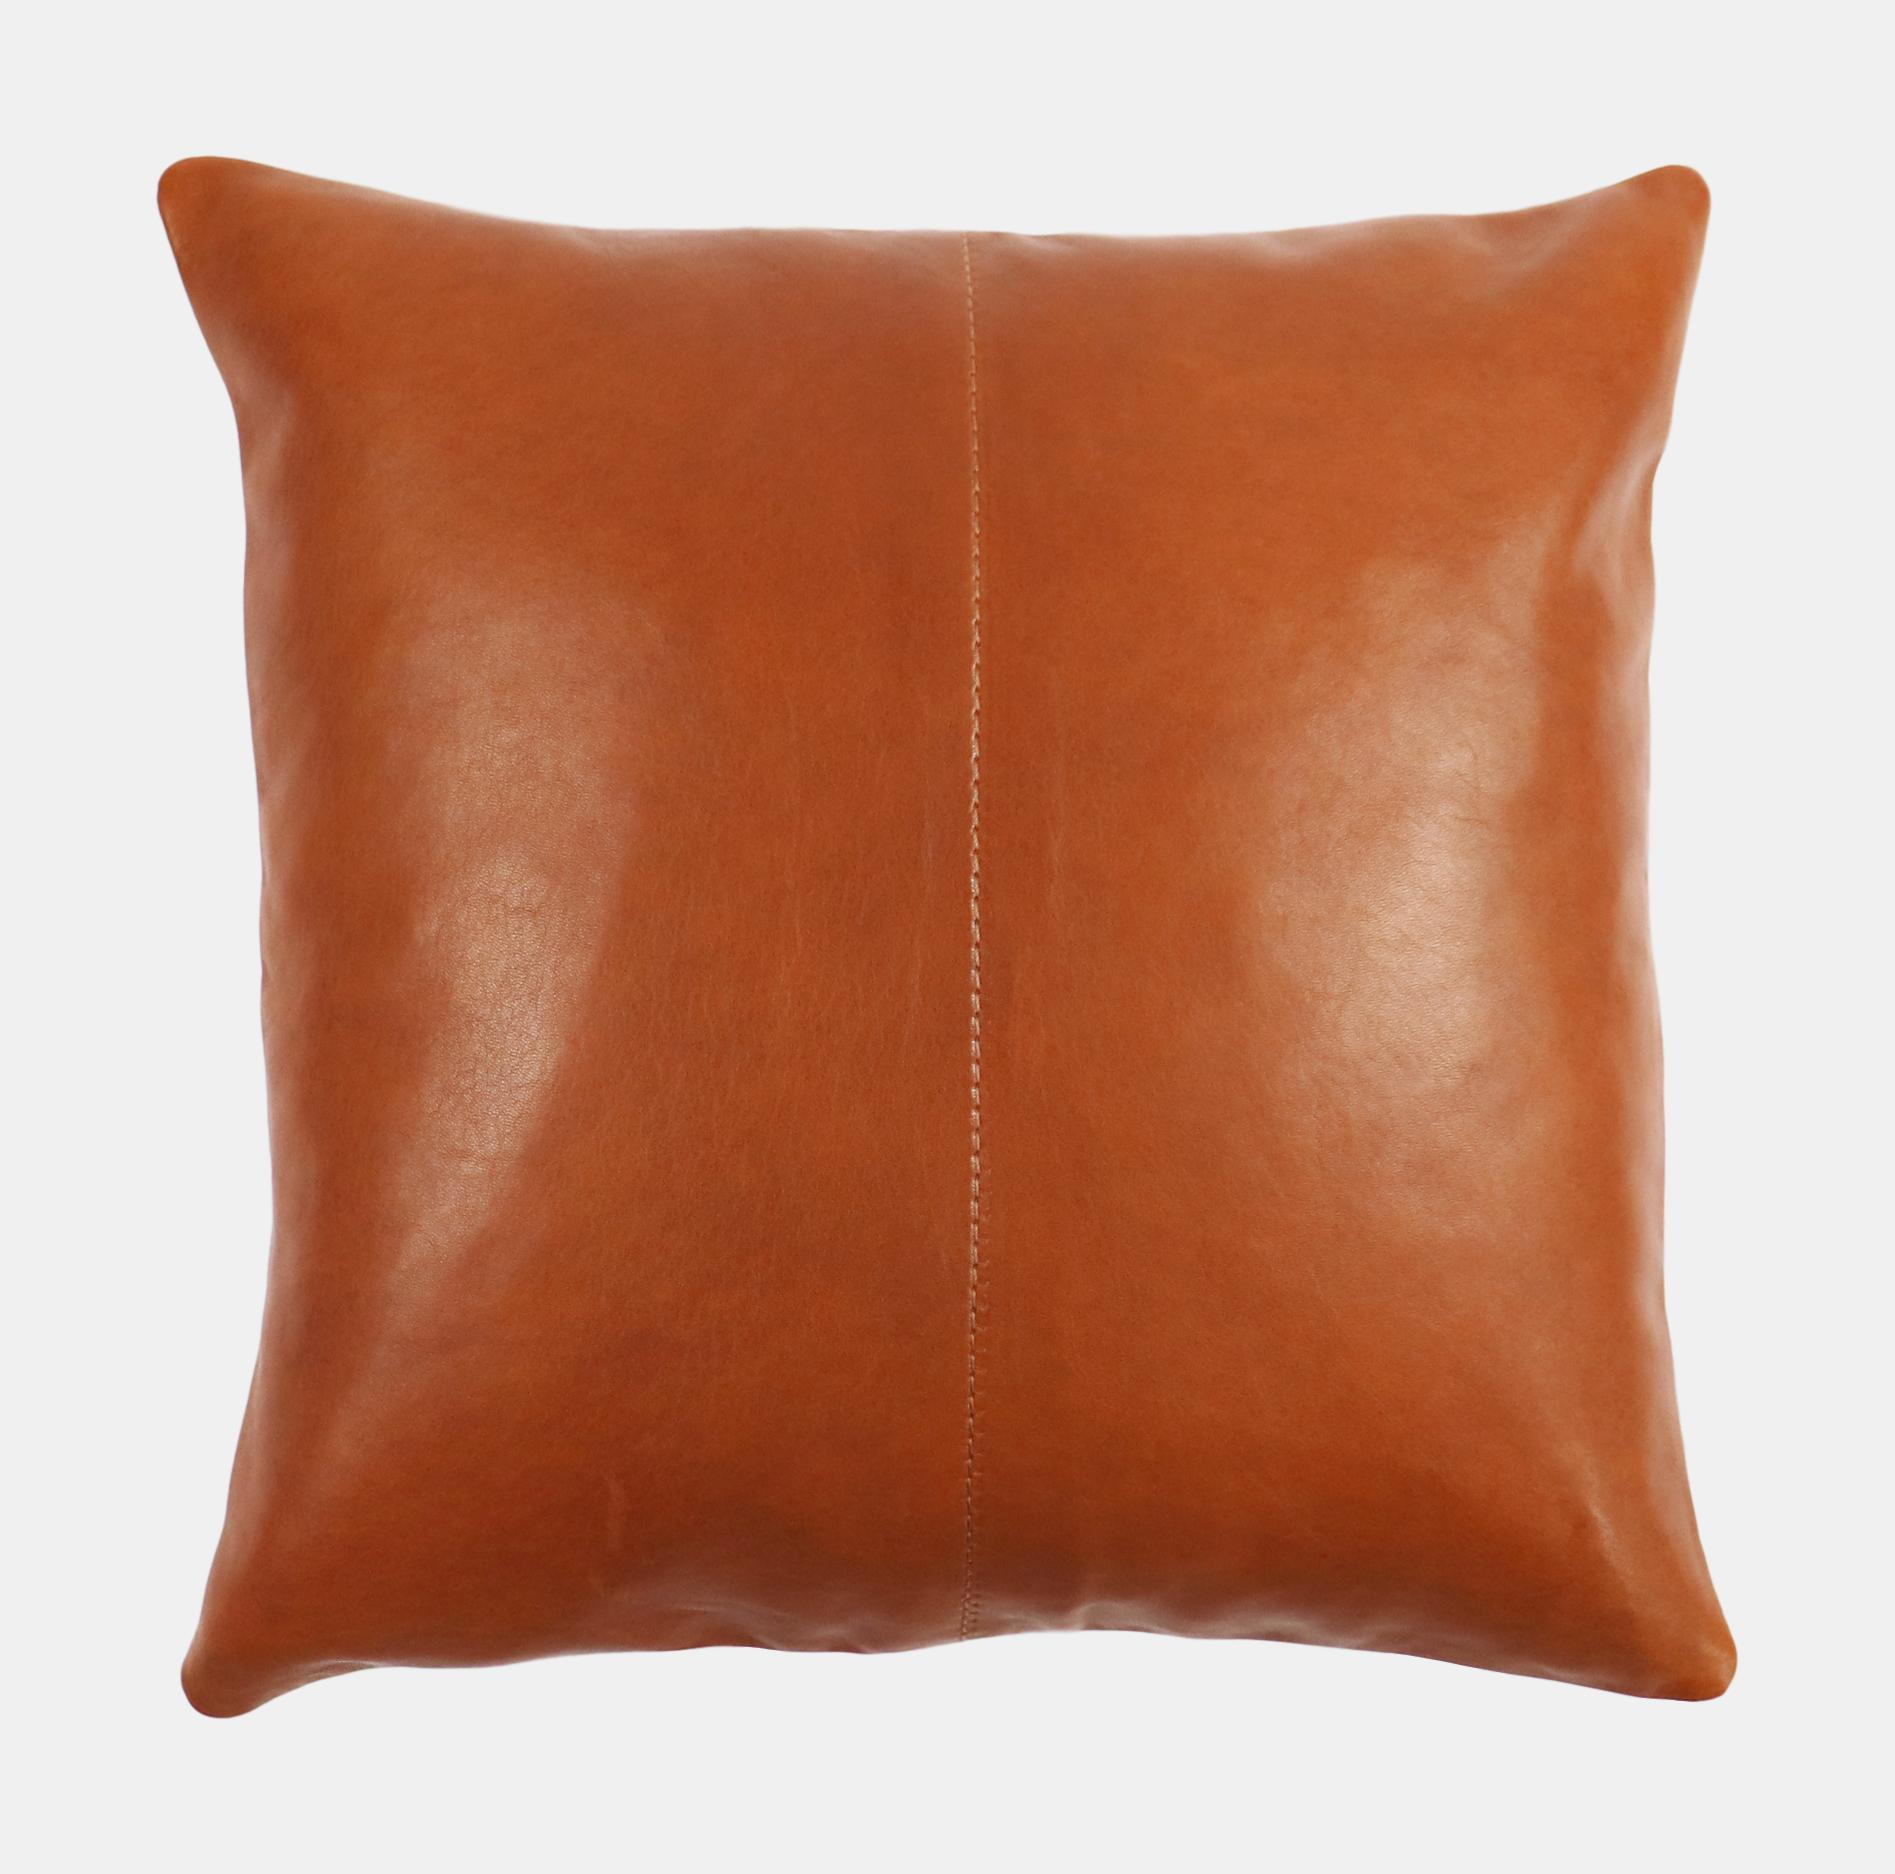 INWOOD Pillow